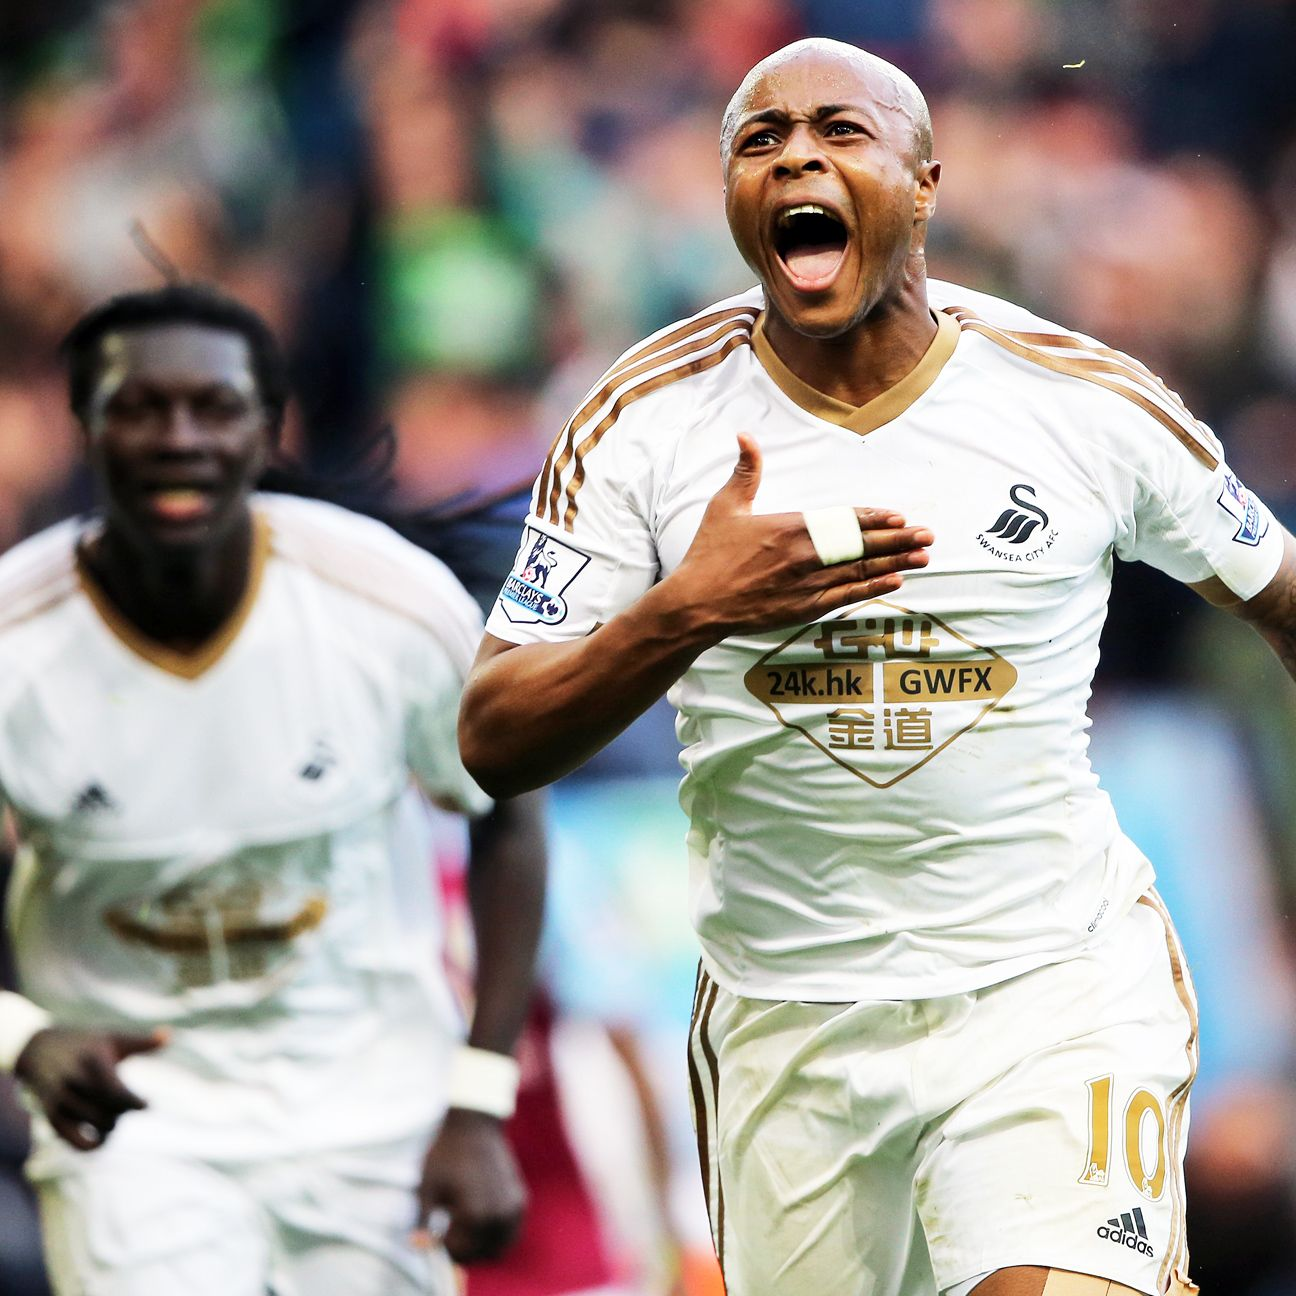 Andrew Ayew capped Swansea's second half comeback with a late goal to earn all three points.